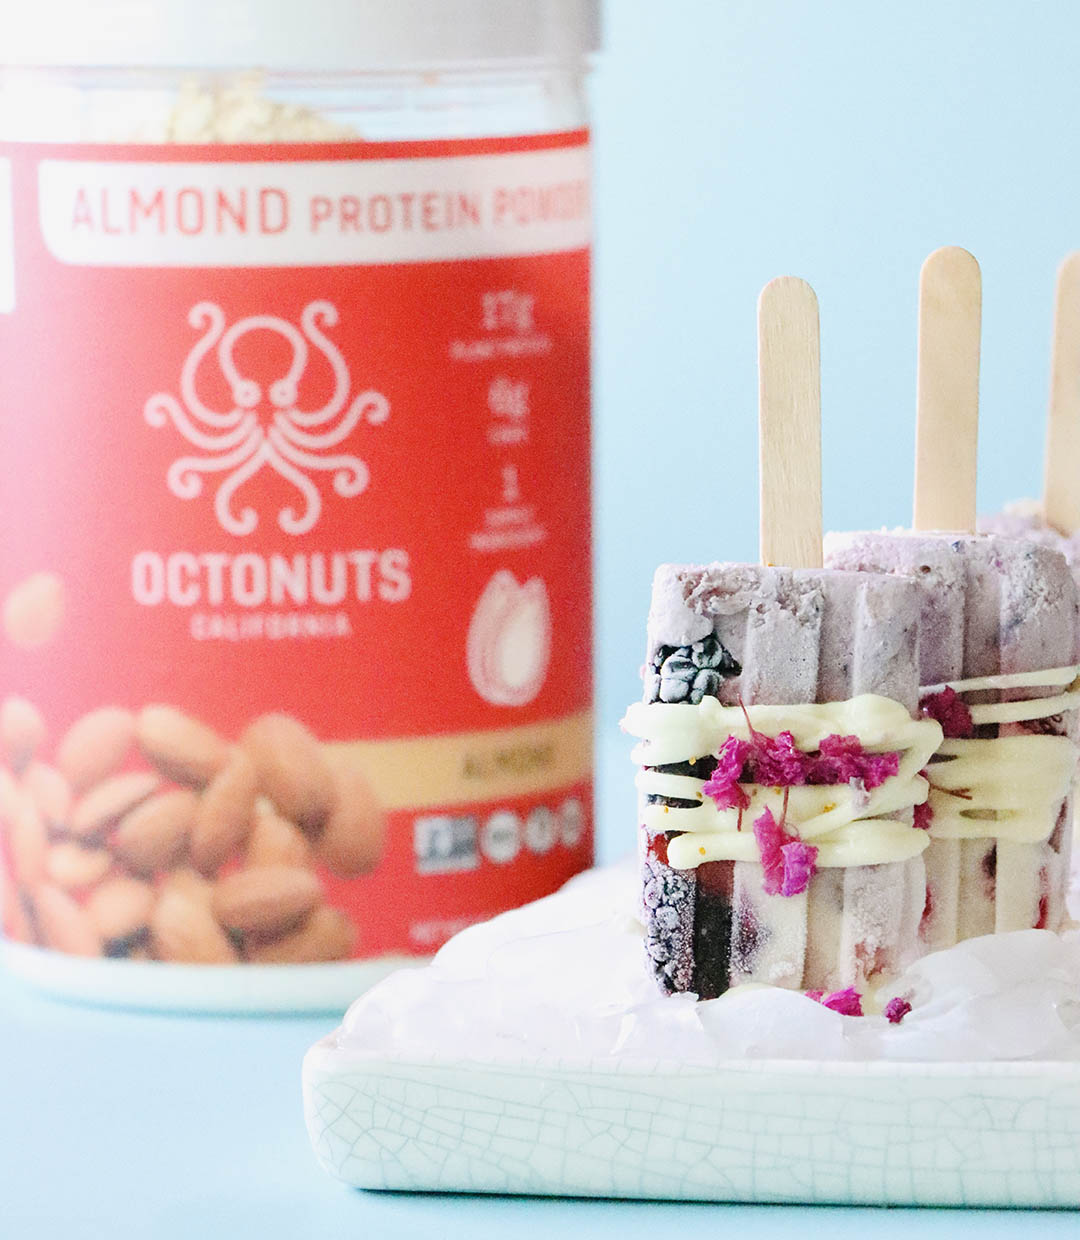 Protein Popsicles with Octonuts Almond Protein Powder